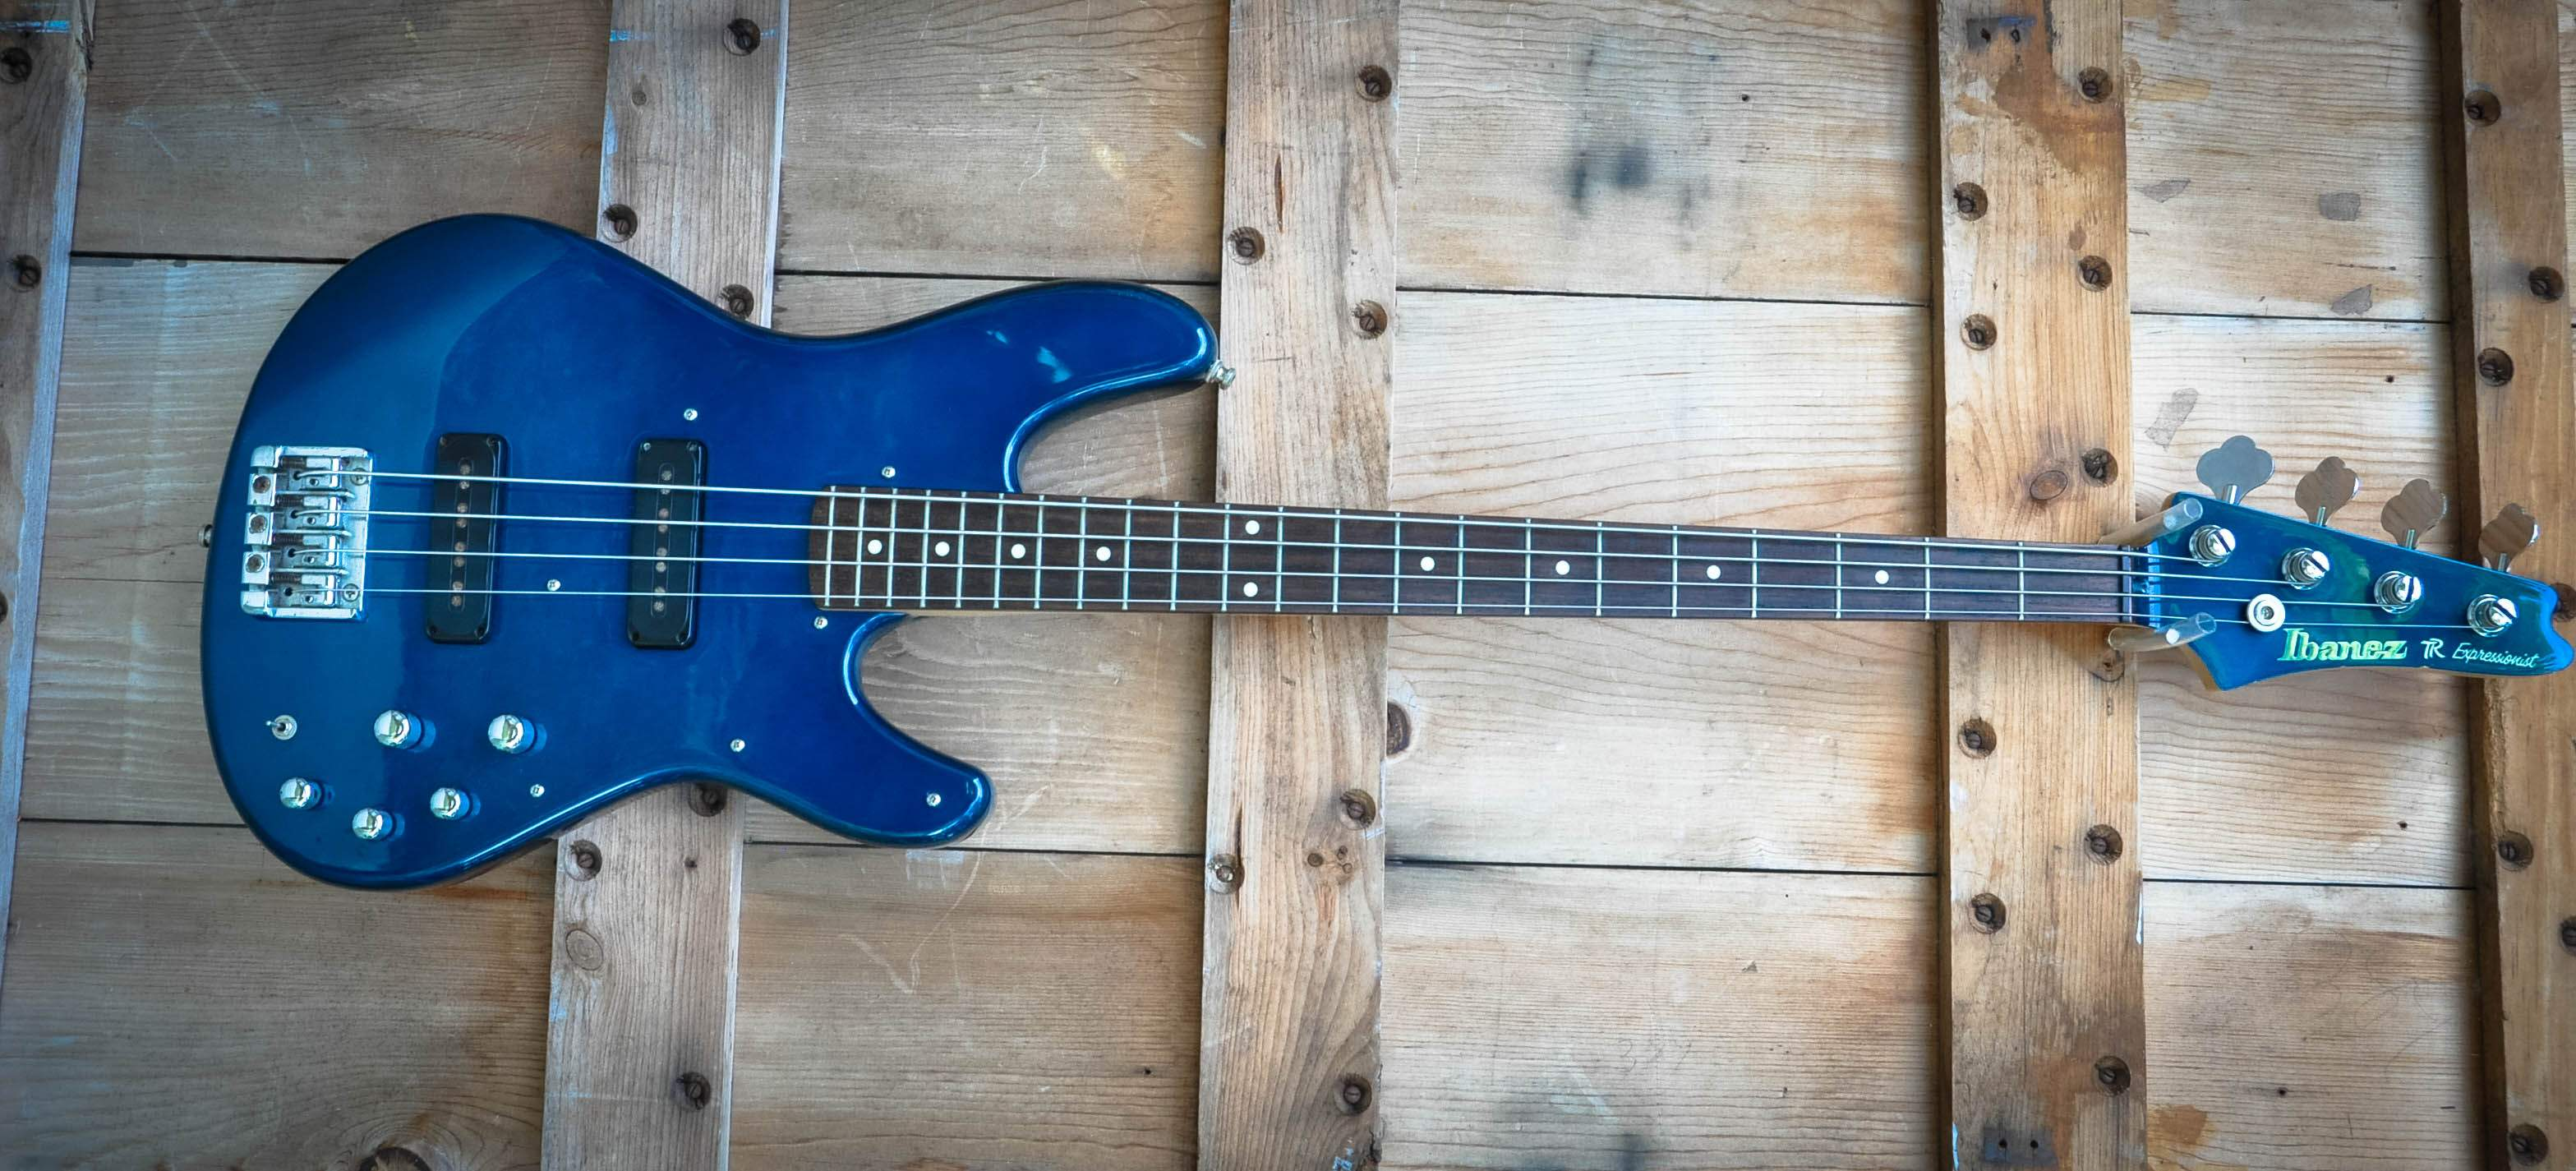 SOLD - REDUCED ! 1997 Ibanez TR 600 RB Jazz Bass Killer!-Made in ...